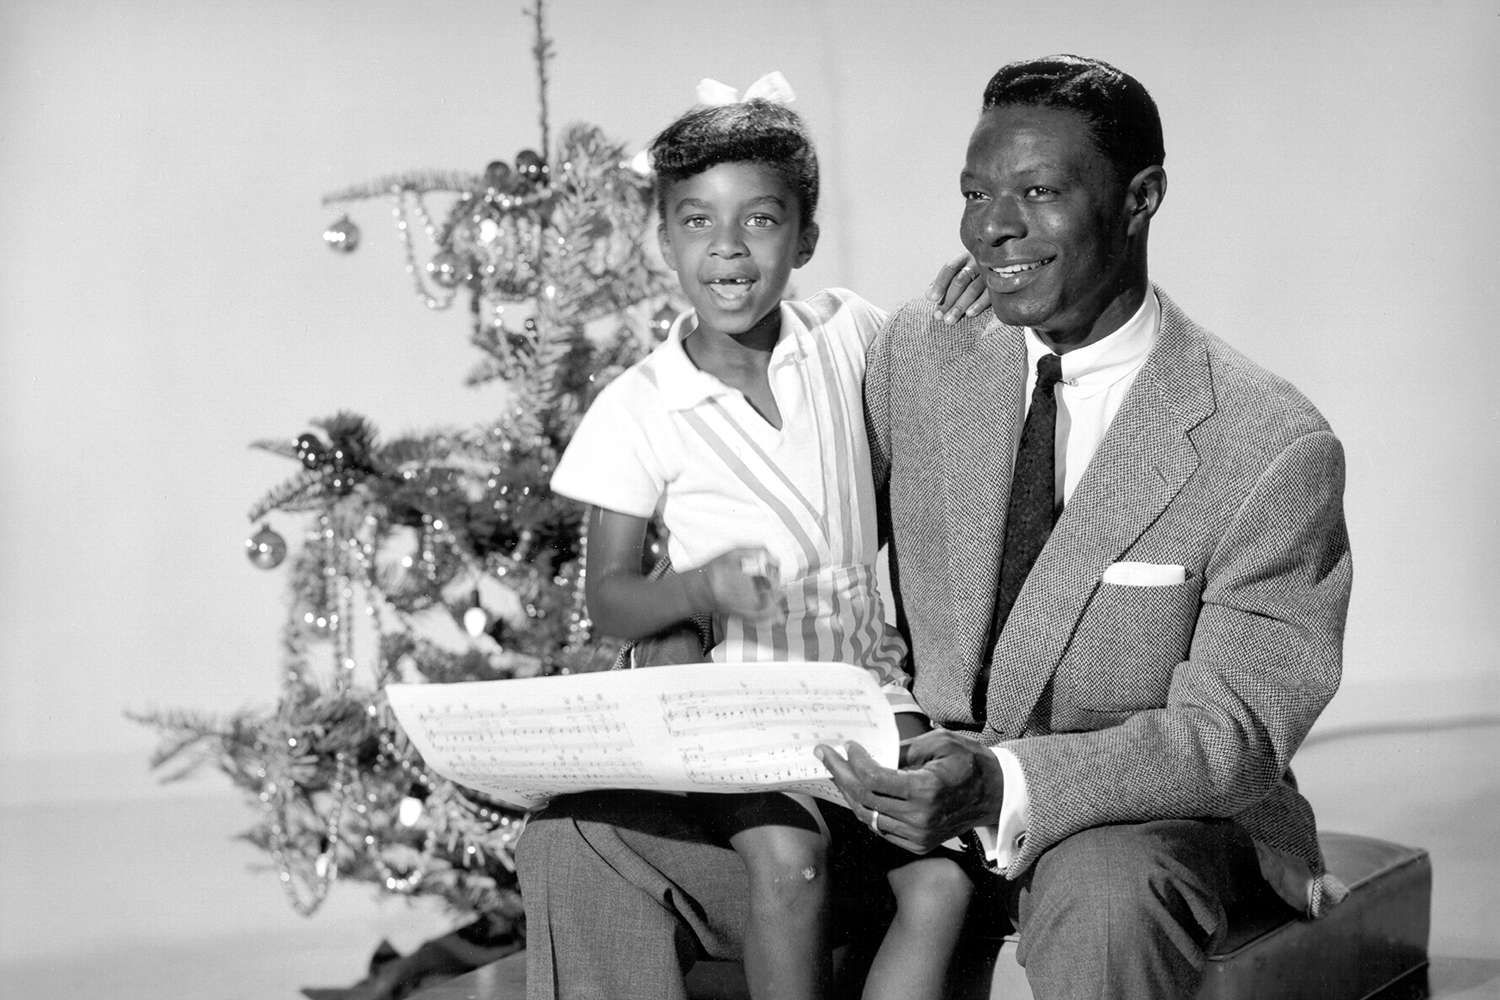 the christmas song nat king cole 1961 - Best Rb Christmas Songs